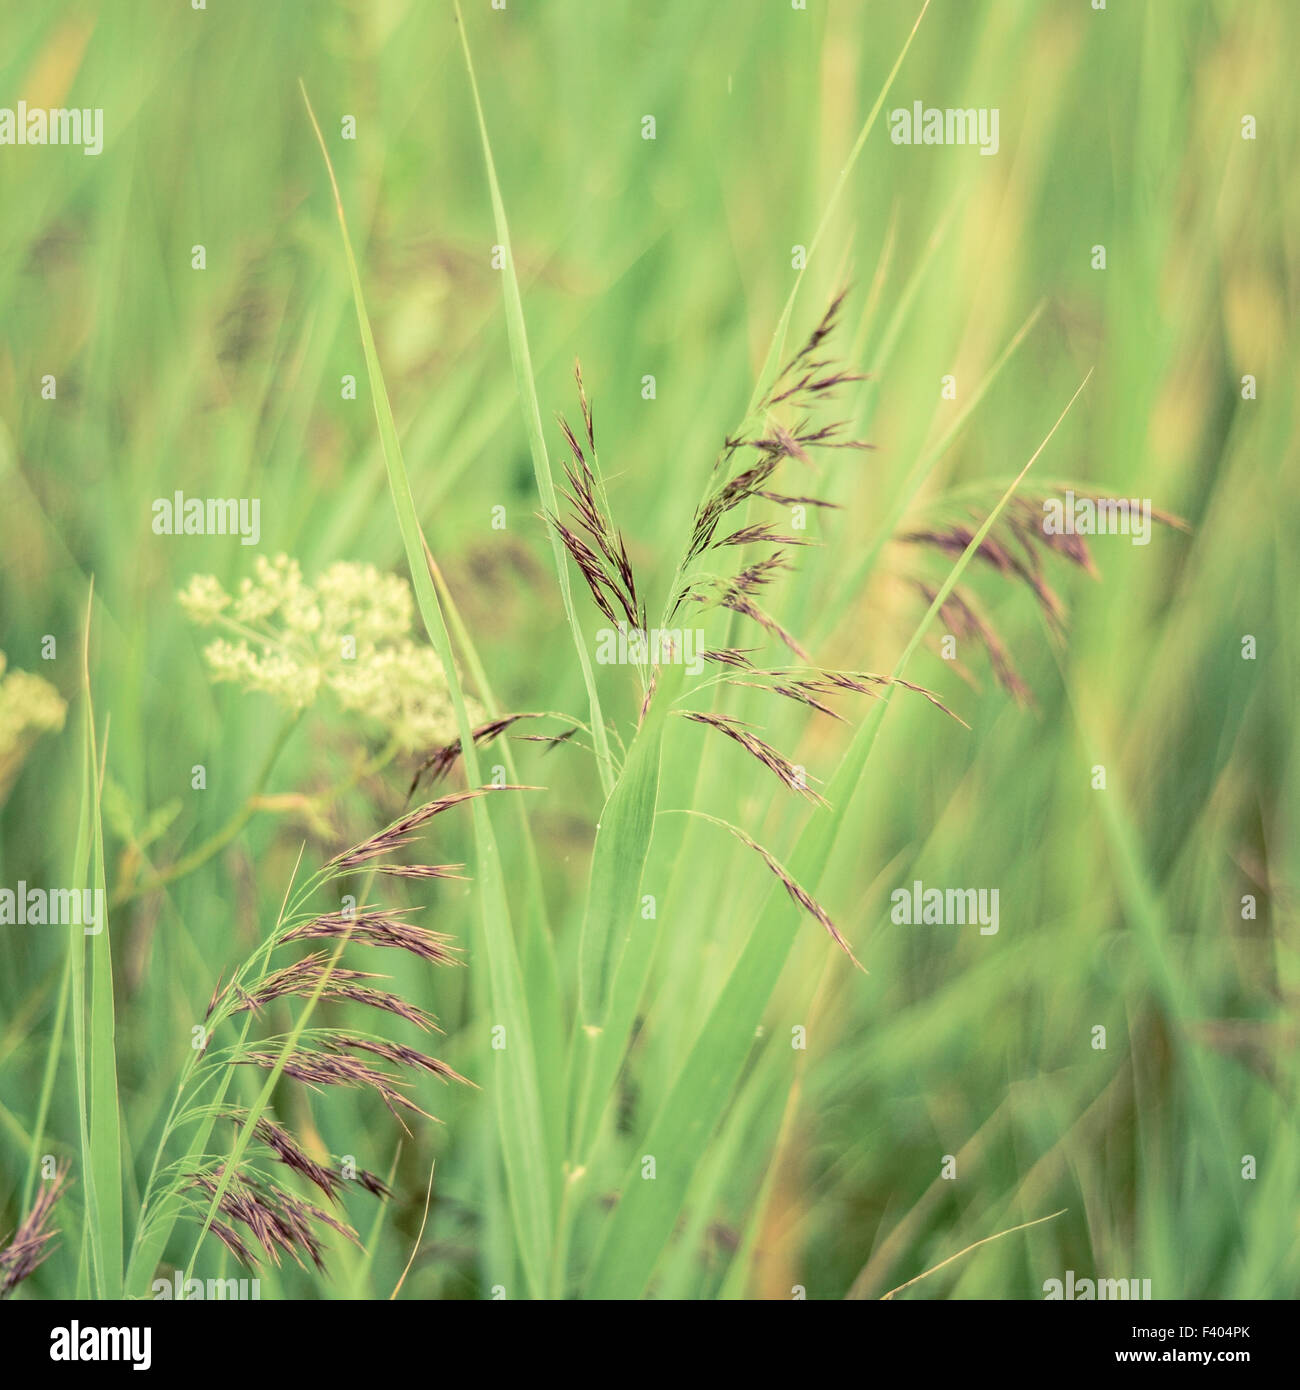 Retro Filtered Spring Grasses - Stock Image